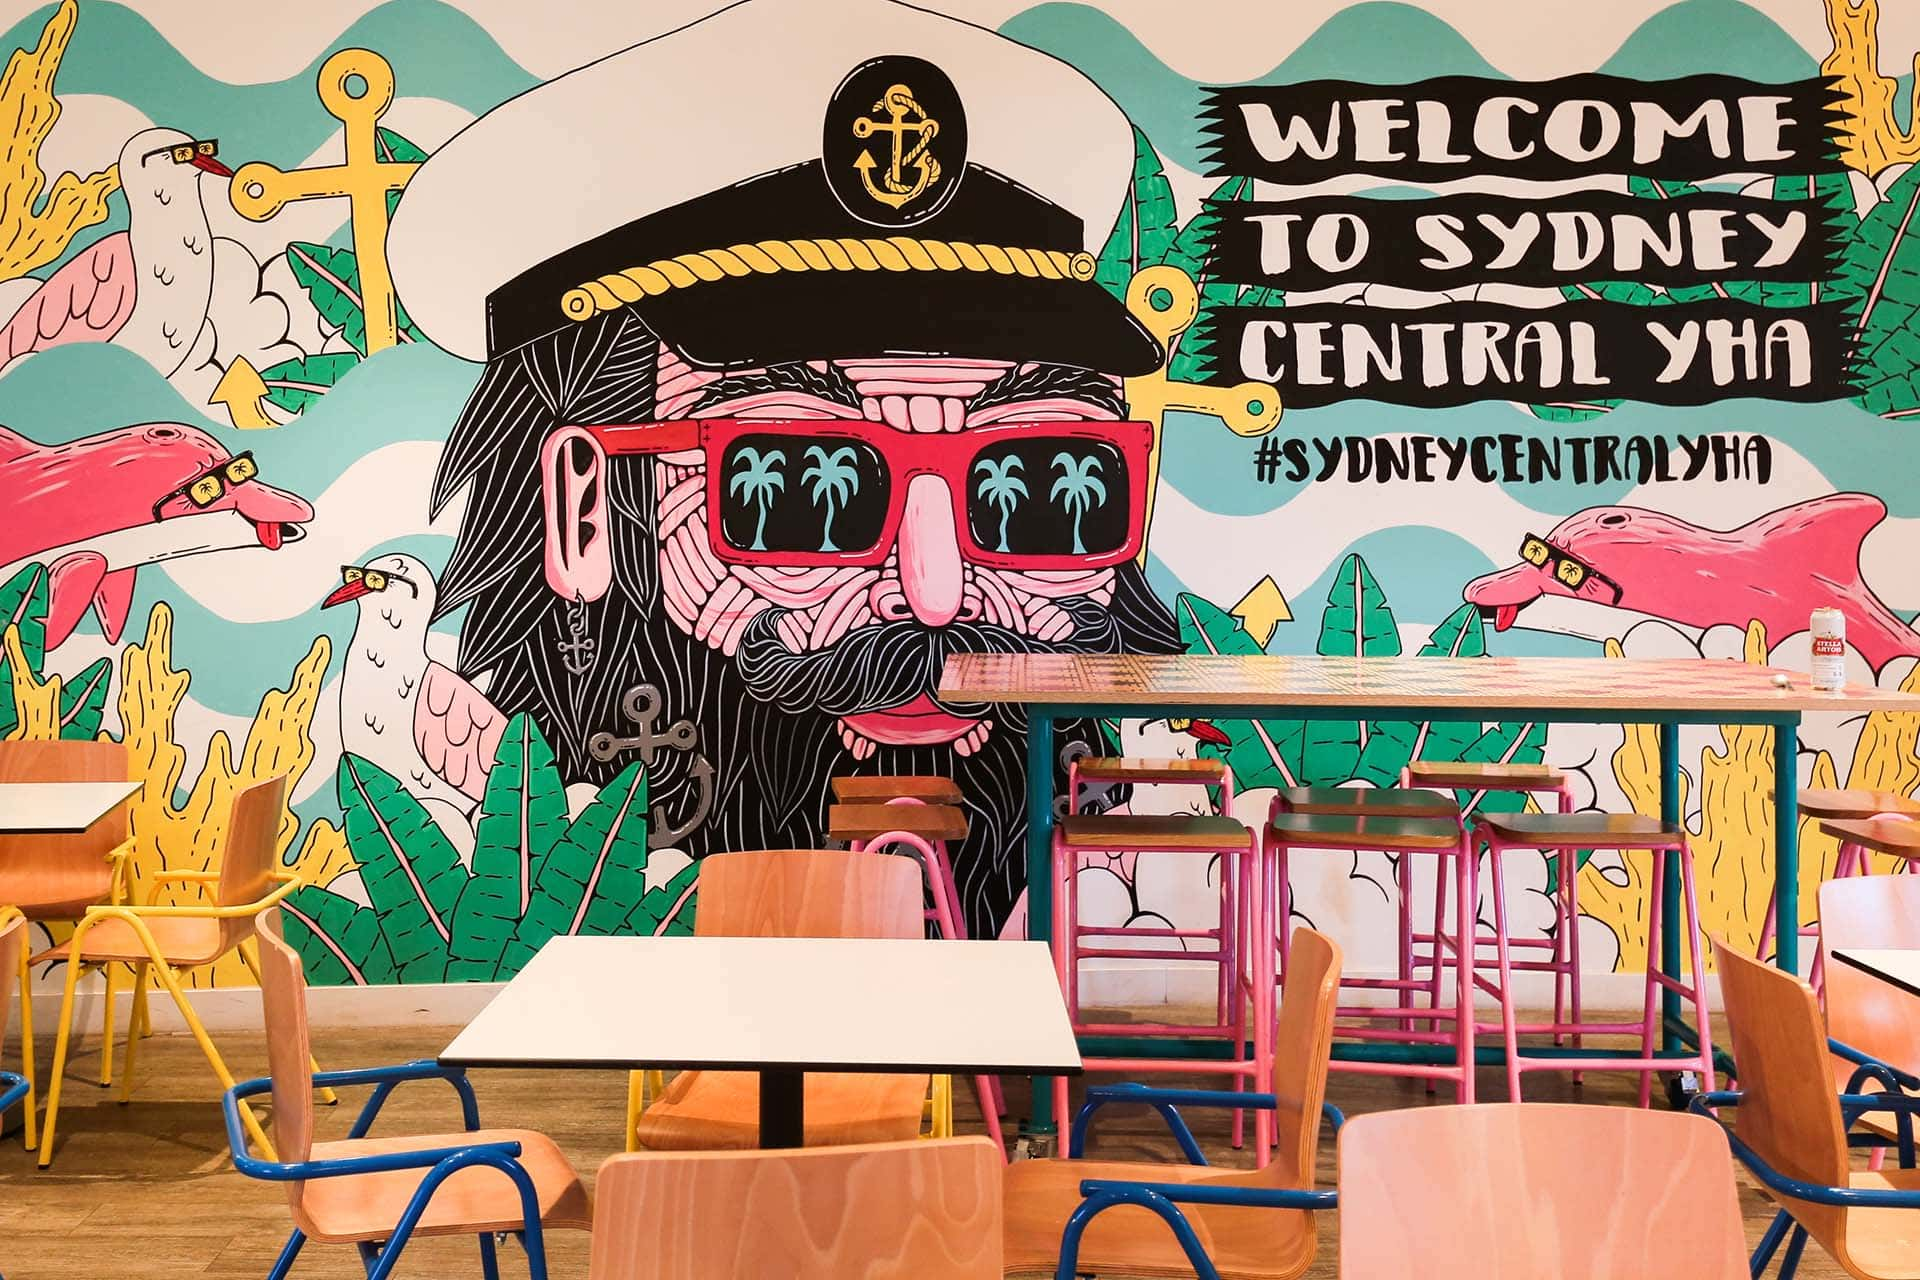 sydney-central-yha-review